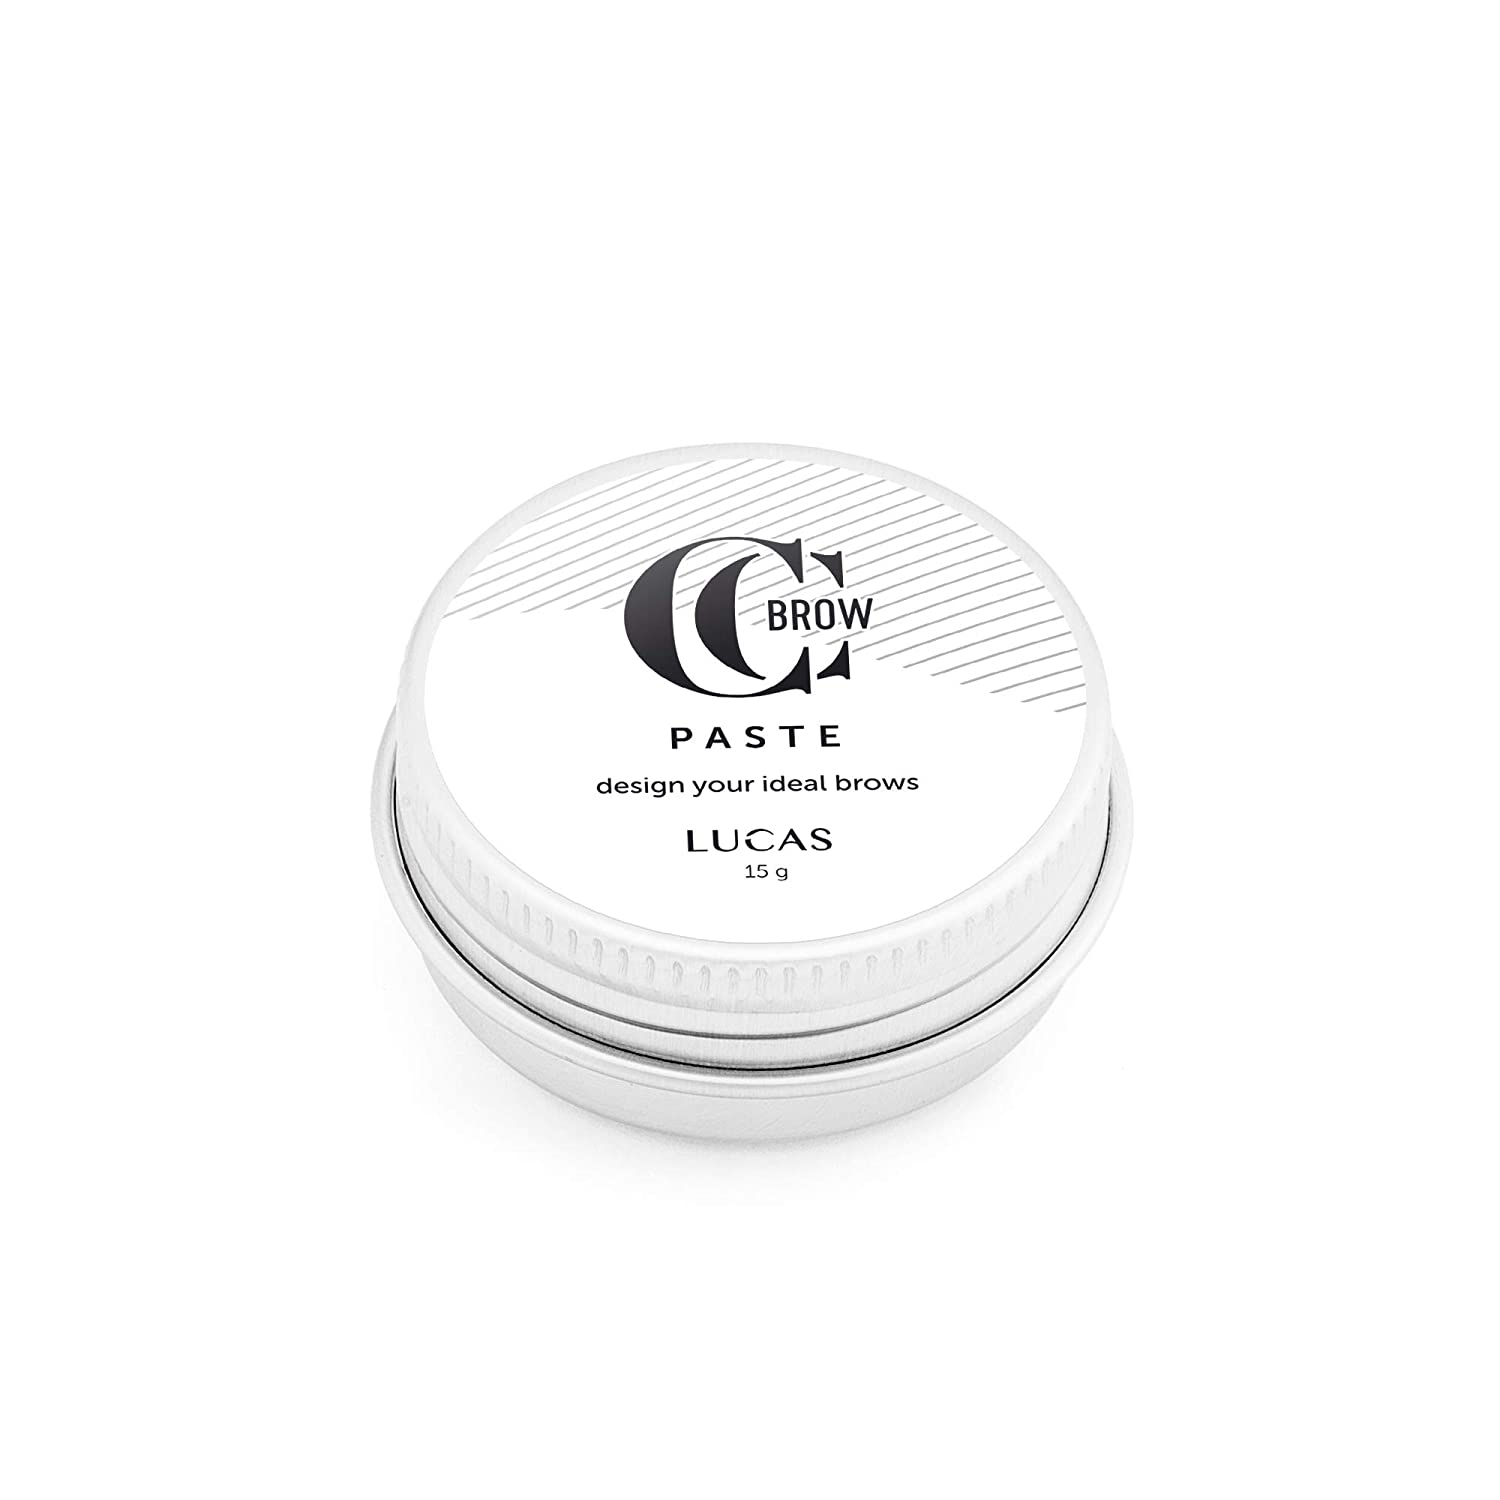 Brow Paste by CC Brow - White Eyebrow Mapping Paste, Brow Shape and Define 15 g / 0.5 oz, Eyebrow Tinting Tool